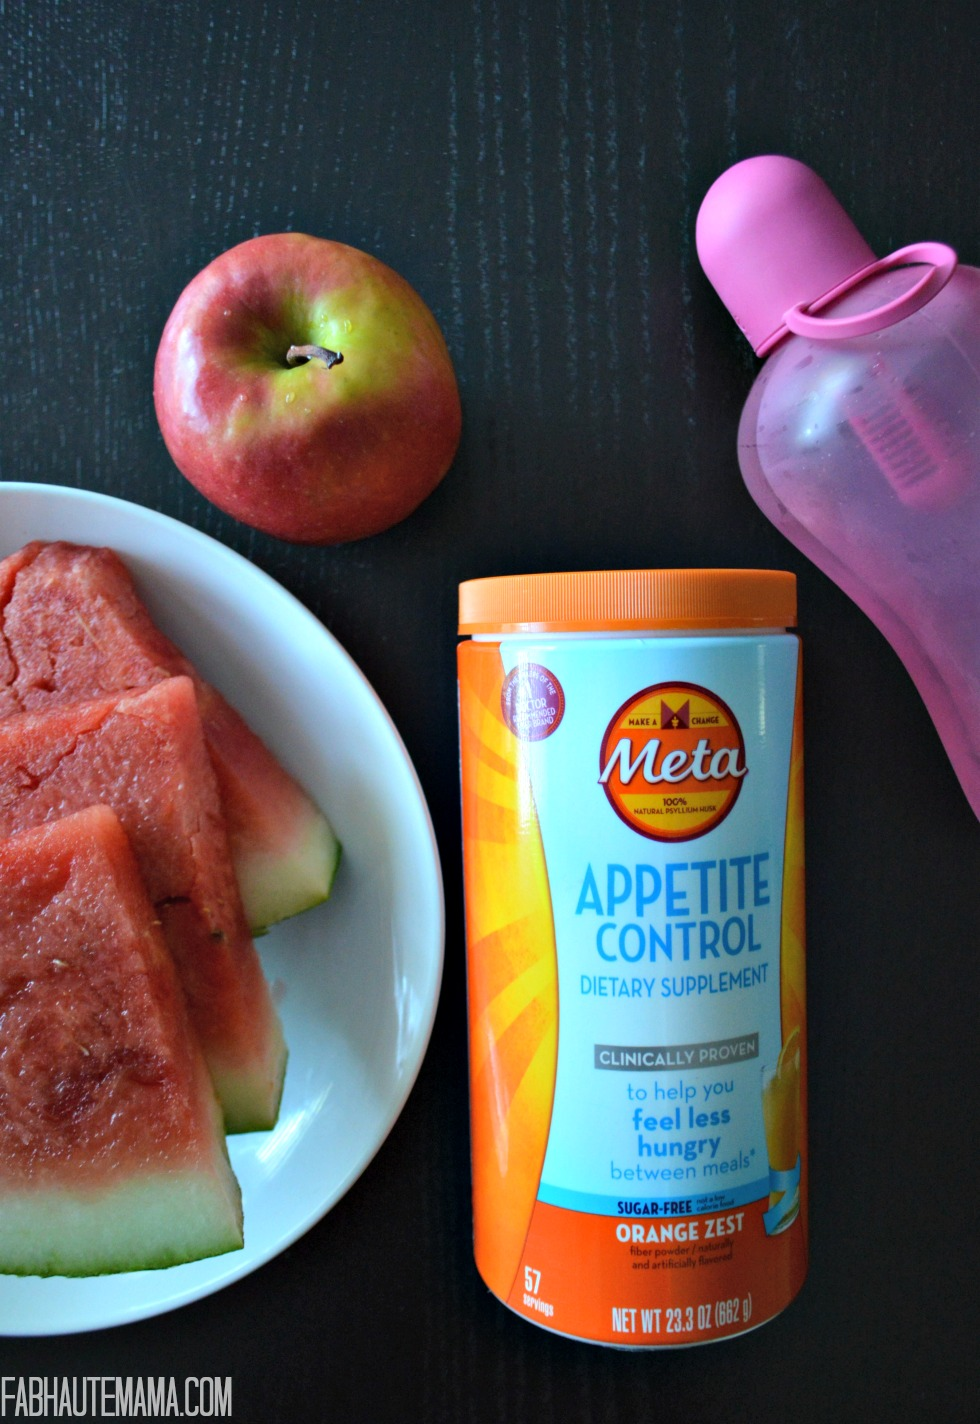 Drink Meta Appetite Control after meals to help you feel full longer and avoid cravings.